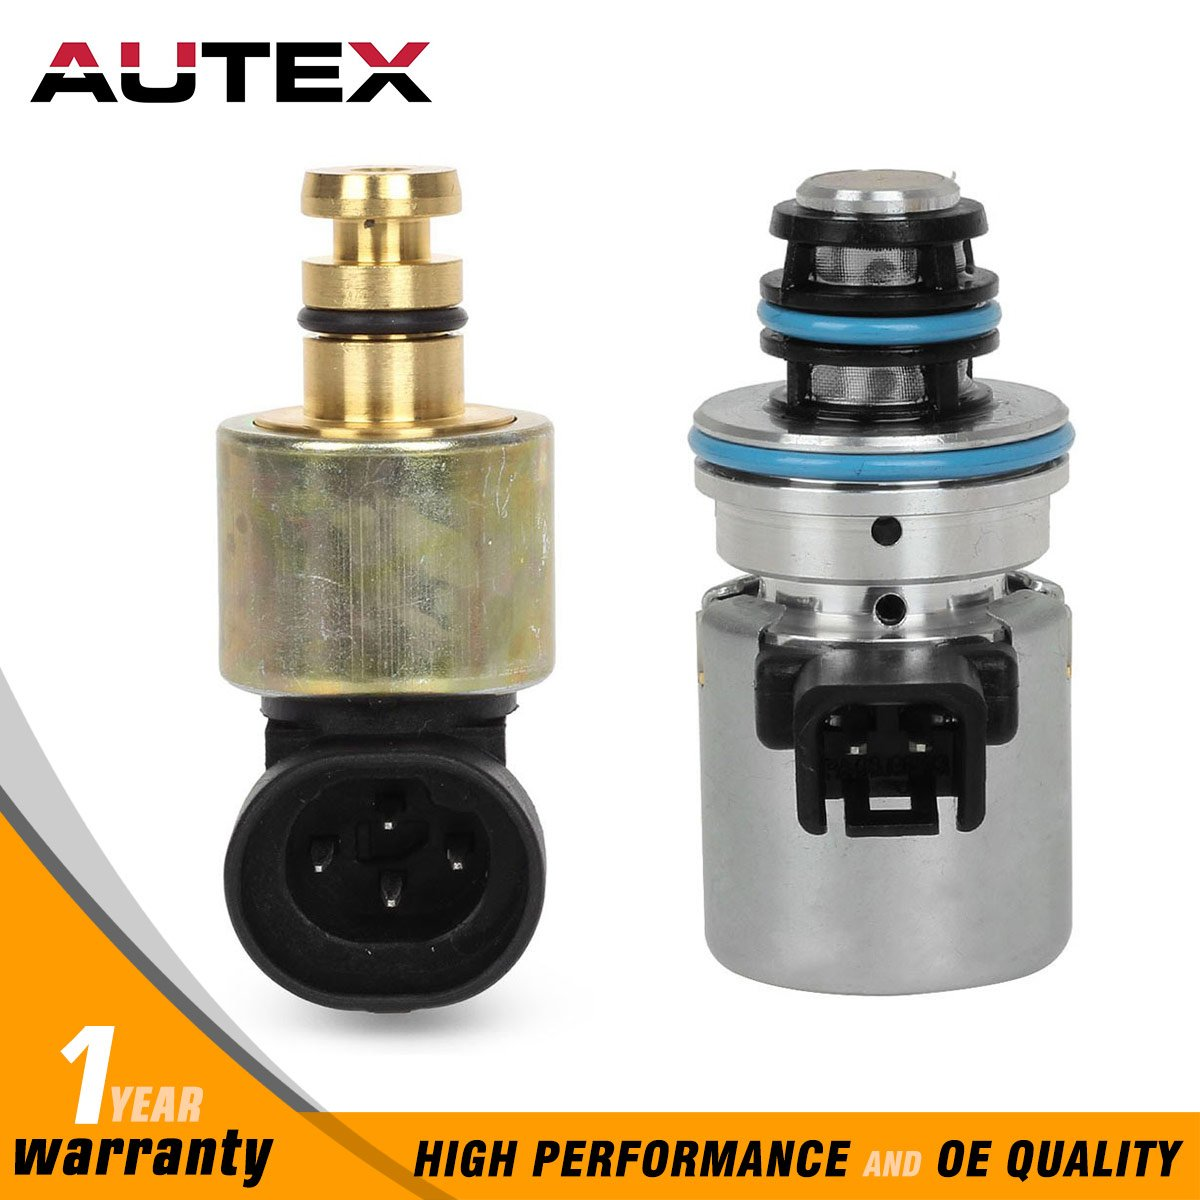 Autex Transmission Pressure Sensor Governor Solenoid Kit A500 A518 42re Wiring Harness 44re 46re 47re Compatible With